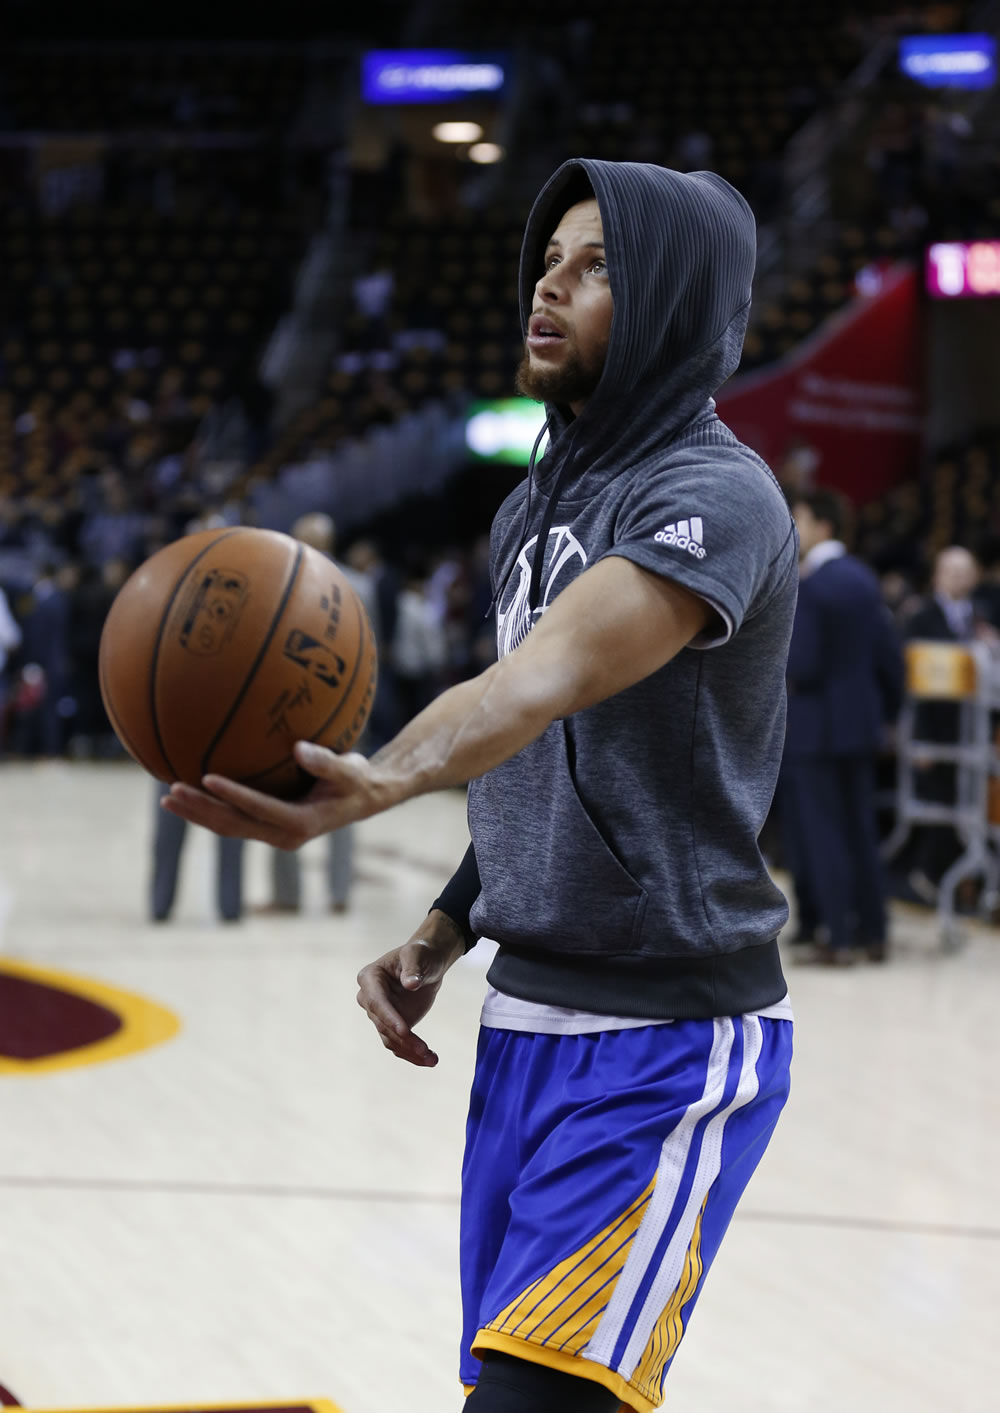 <div class='meta'><div class='origin-logo' data-origin='none'></div><span class='caption-text' data-credit='KGO-TV'>Stephen Curry warms up ahead of the NBA Finals in Cleveland, Ohio on Wednesday, June 7, 2017.</span></div>